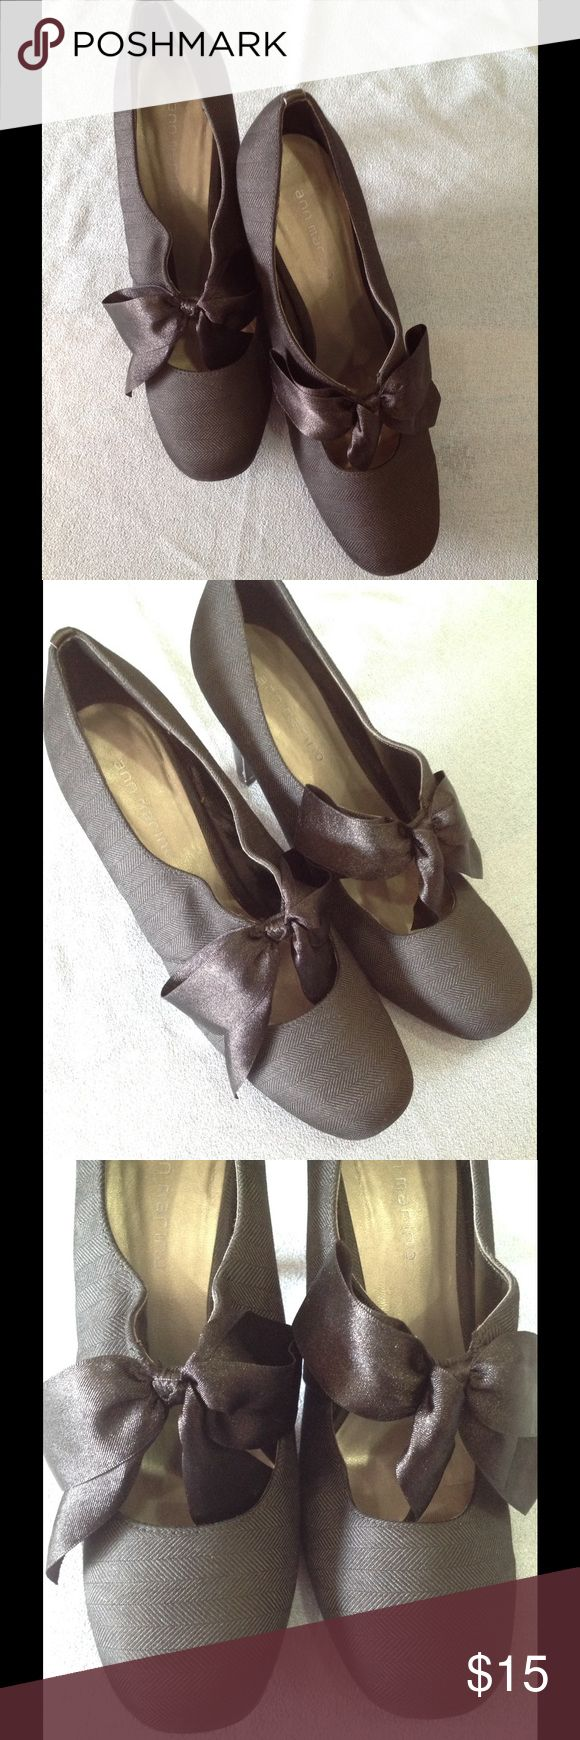 Adorable Black Heels with Satin Bows Size 8.5 These shoes are so simple and yet very stylish!! The satin bow adds an elegant flair! Ann Marino Shoes Heels